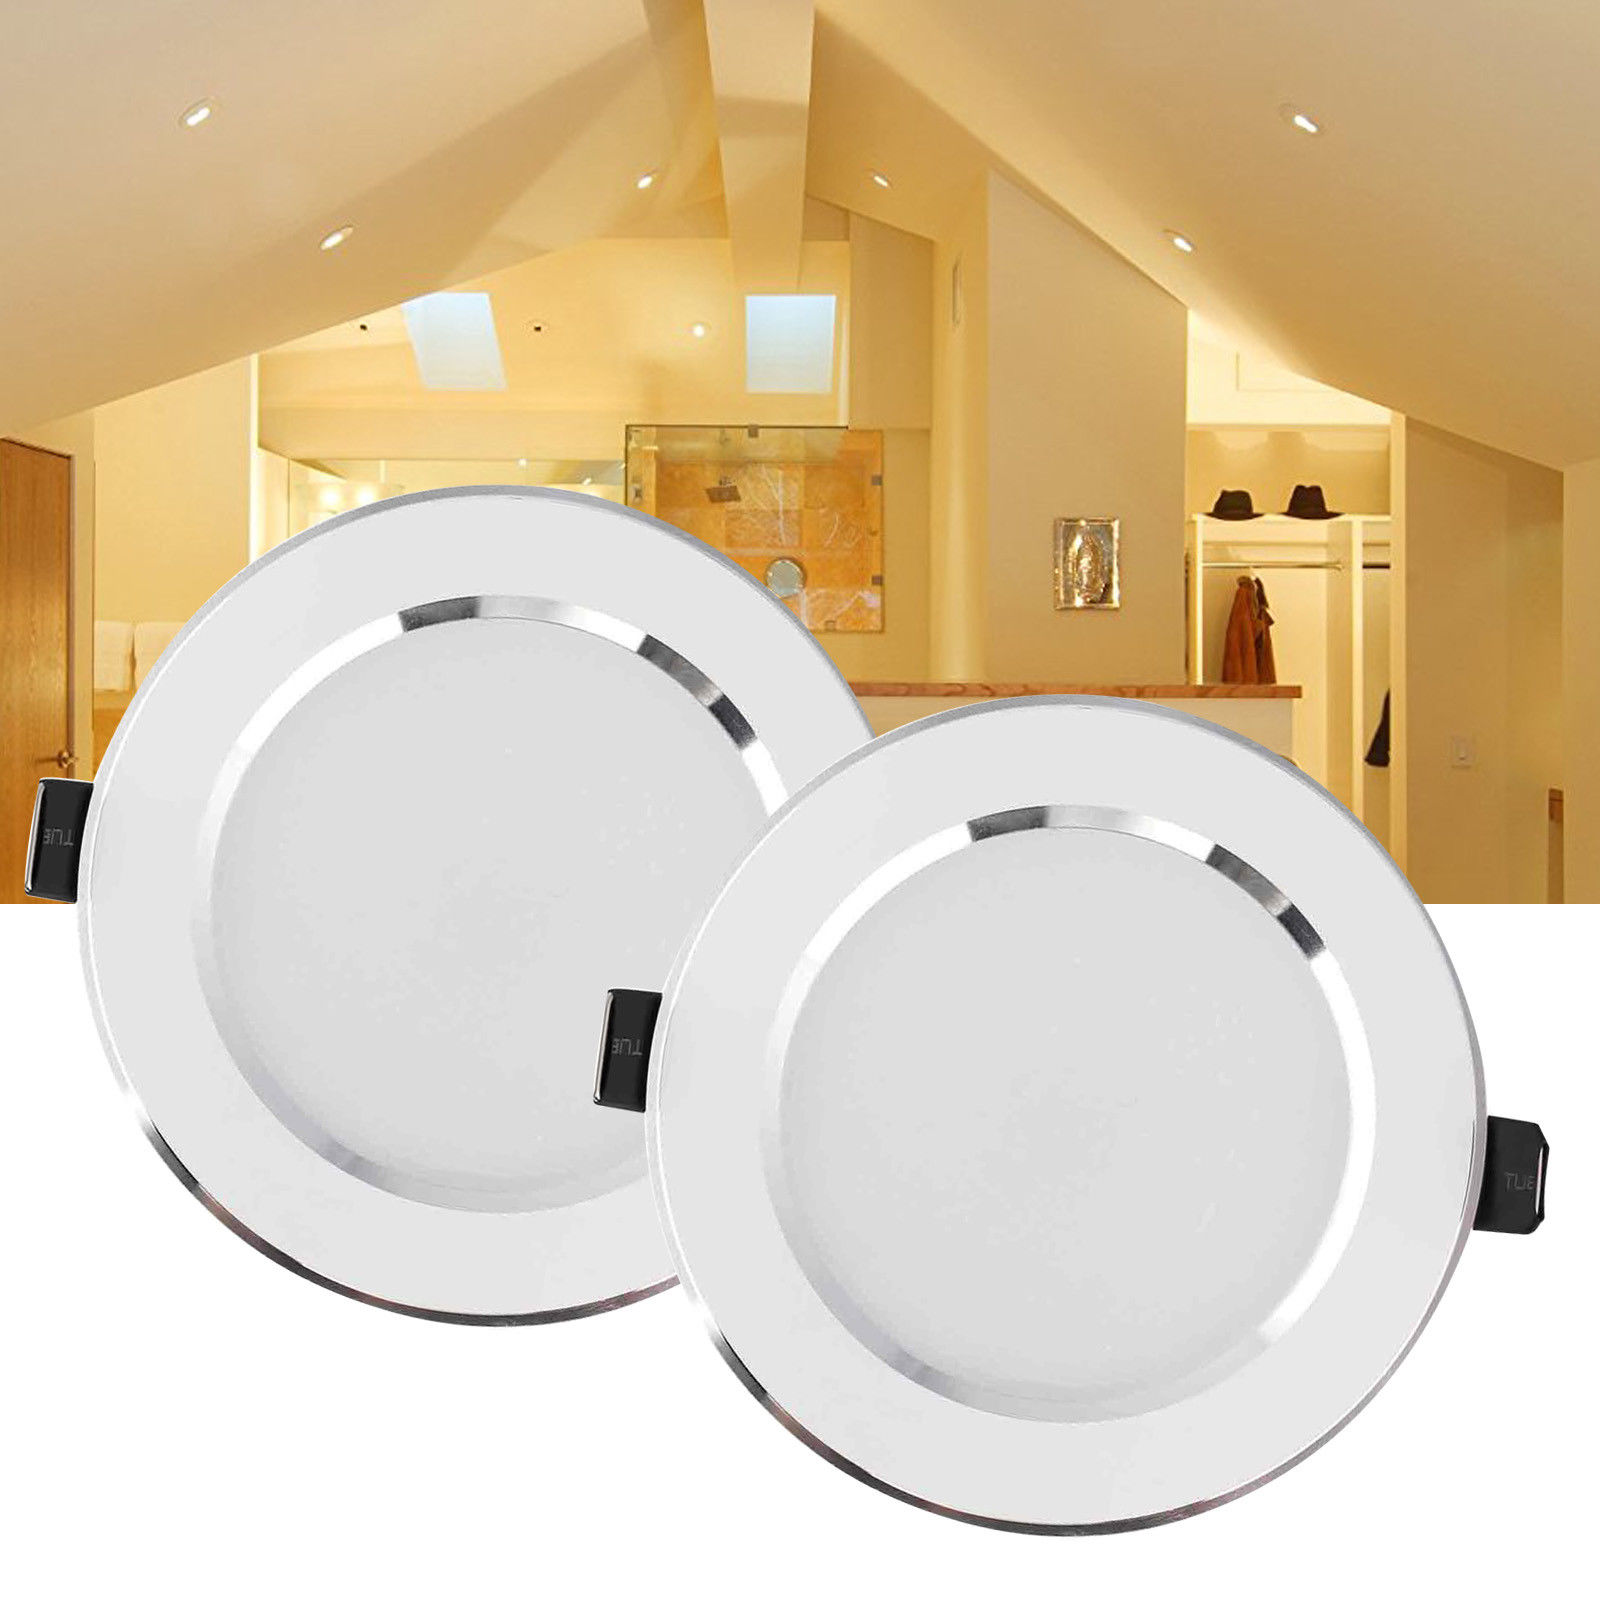 Dimmable Led Recessed Ceiling Light Panel Downlight 3w 5w 7w 9w 12w 15w 18w 21w Ac 110v 220v For Home Office Living Room White Led Downlights Aliexpress